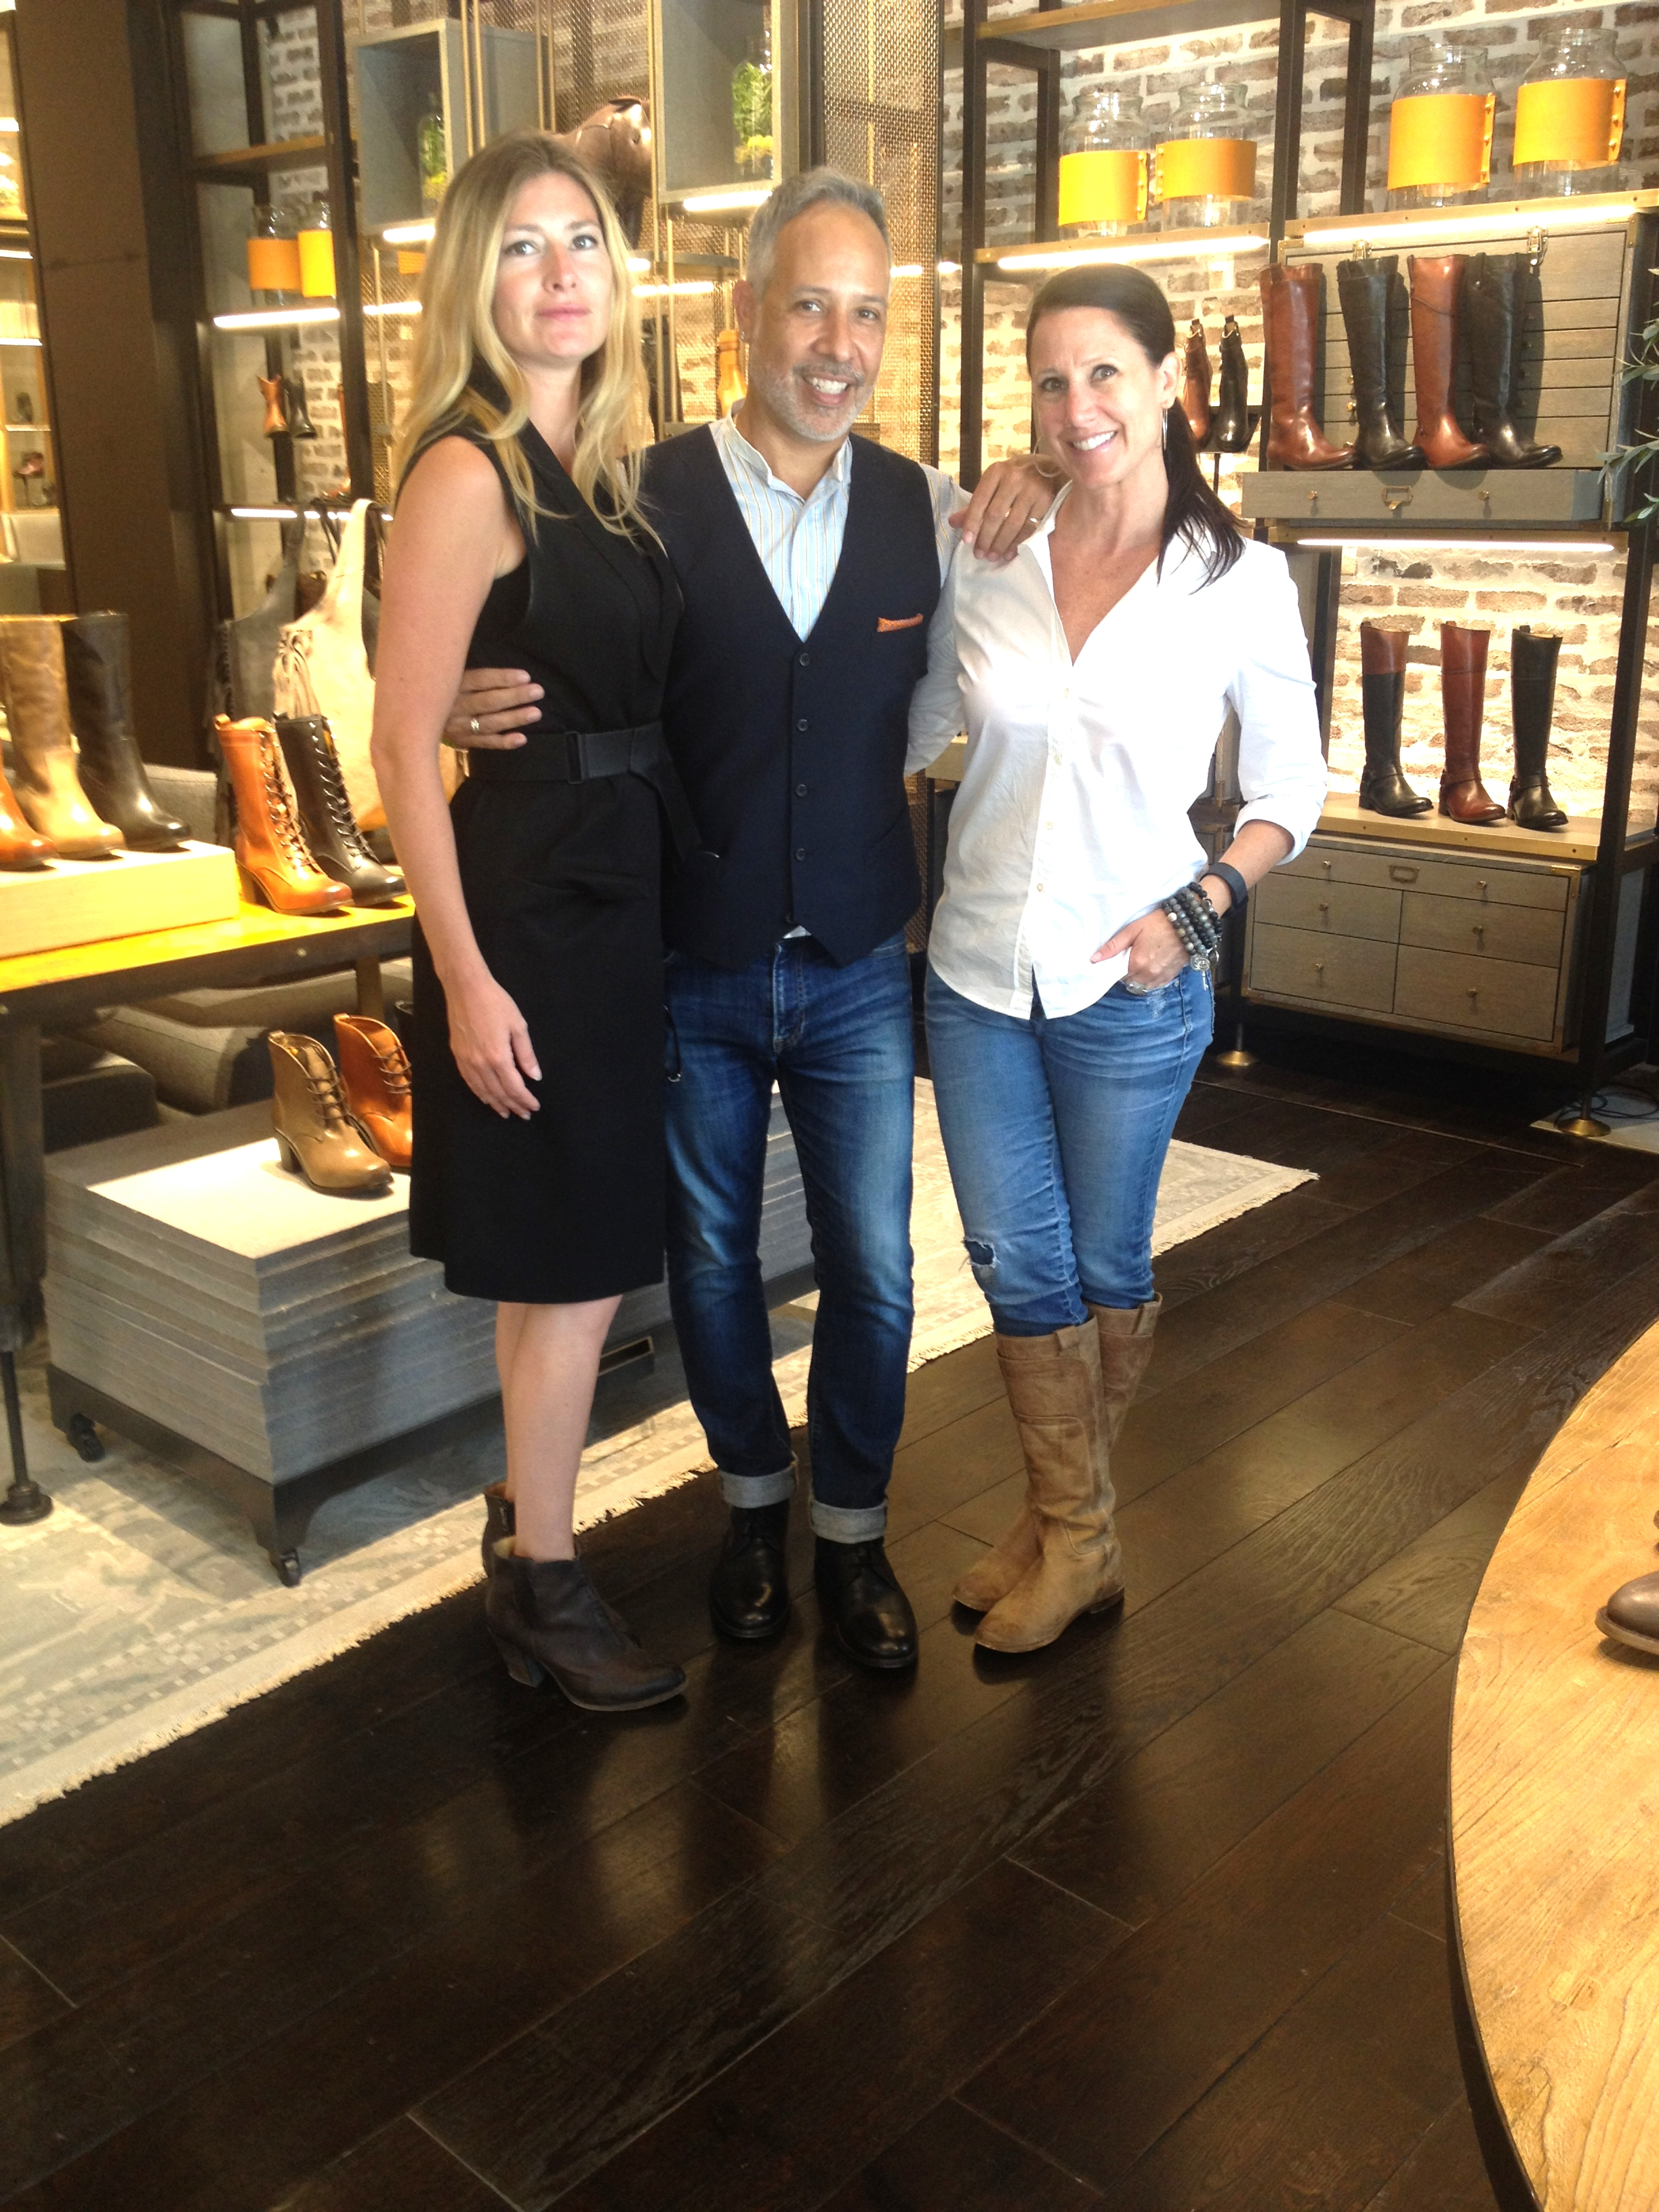 Photo opp with The Frye Company & Caren West PR. And yes, we're all wearing Frye.